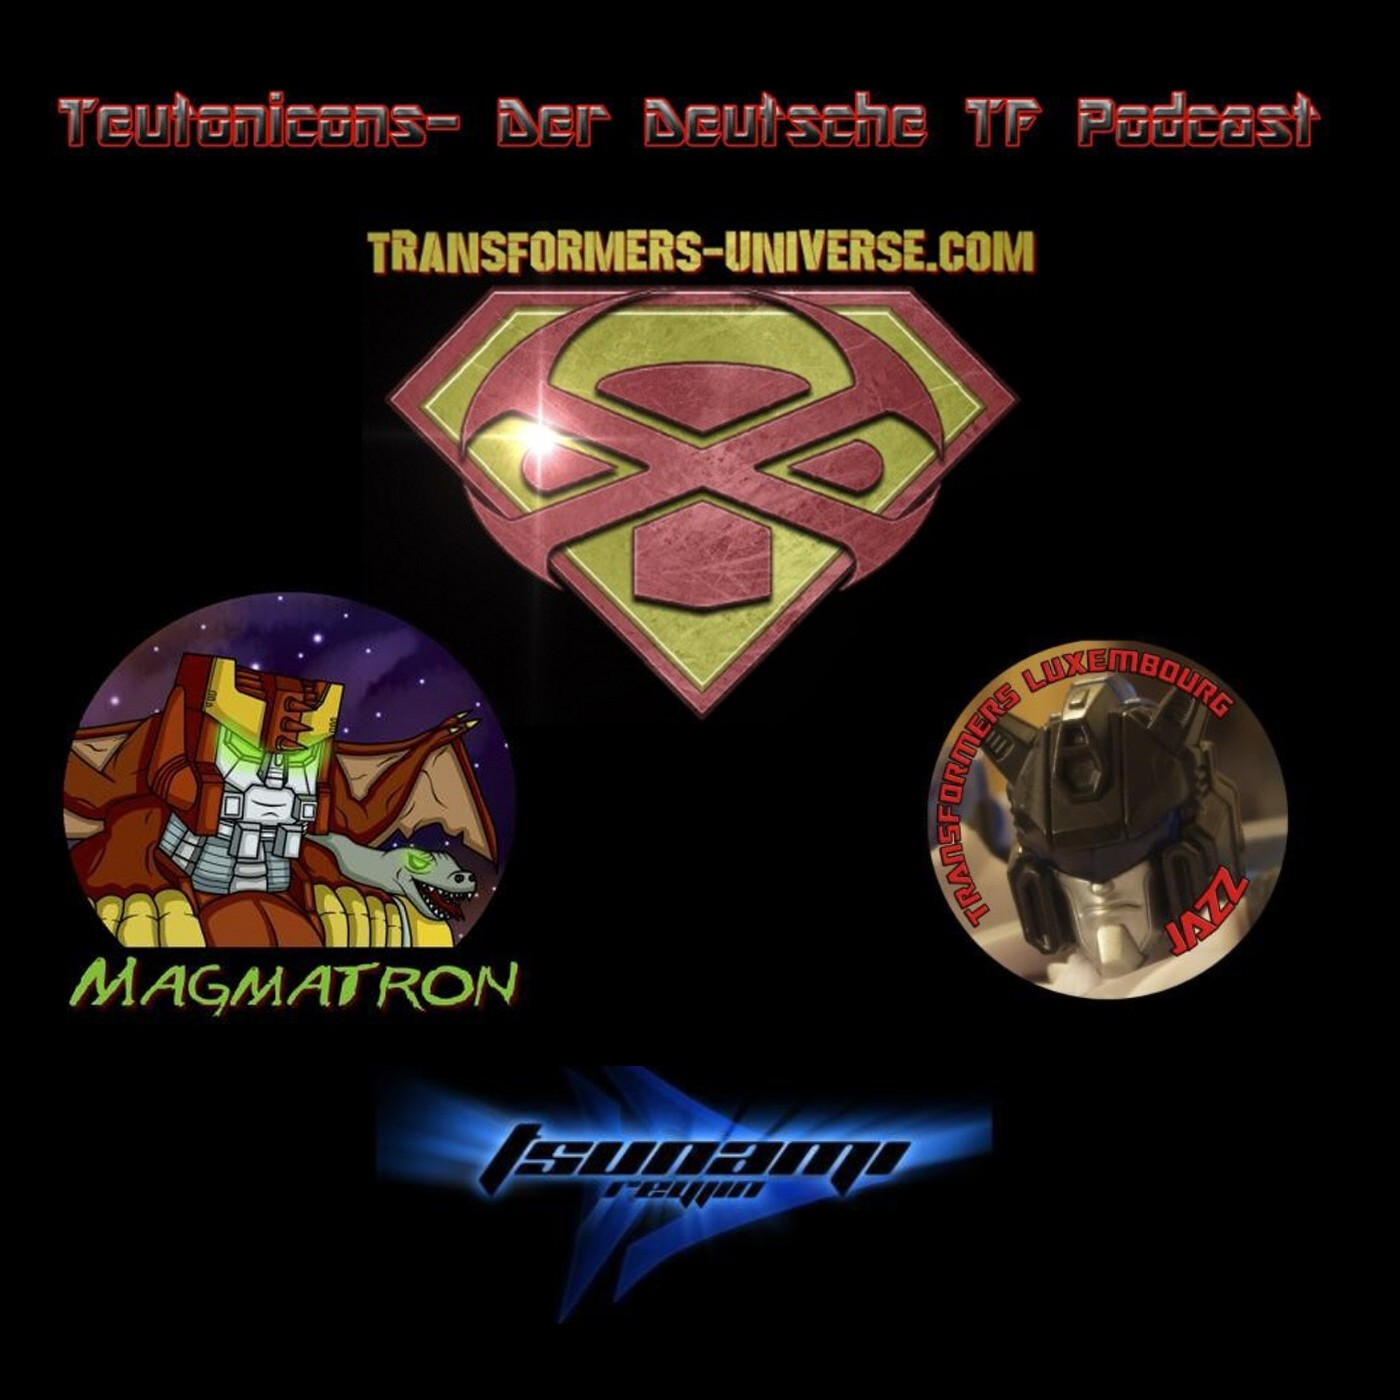 Teutonicons Transformers Podcast